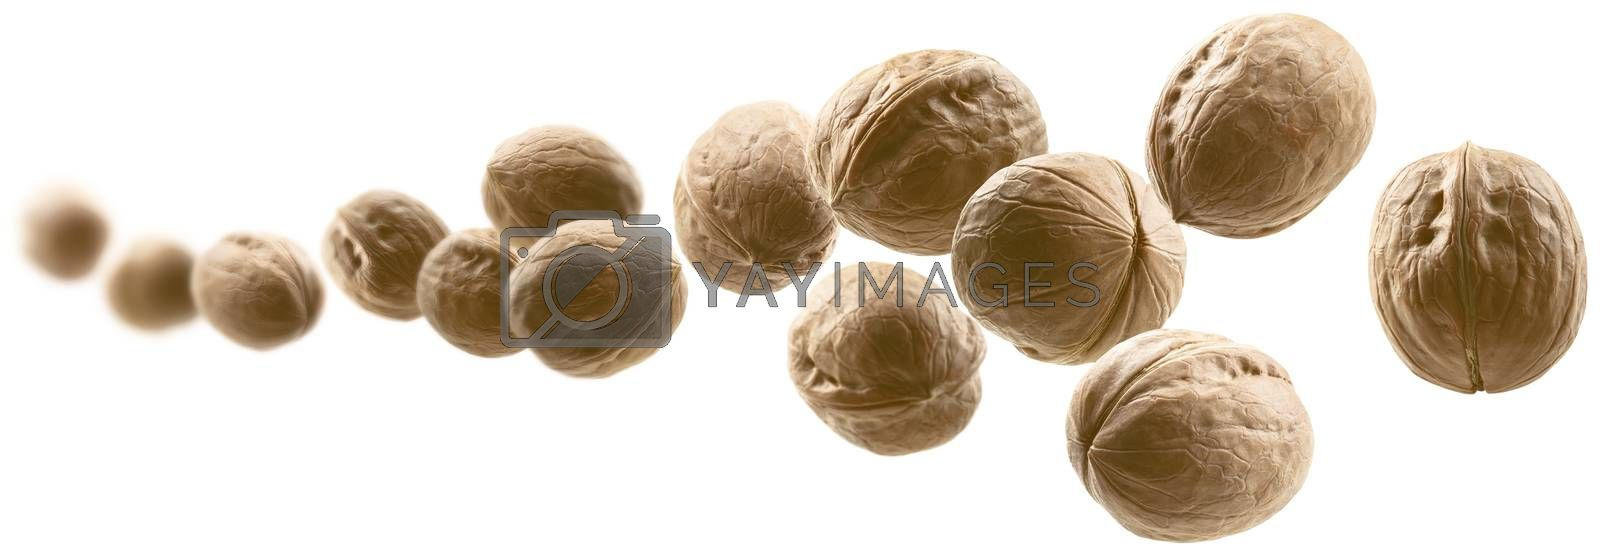 Whole walnuts levitate on a white background.